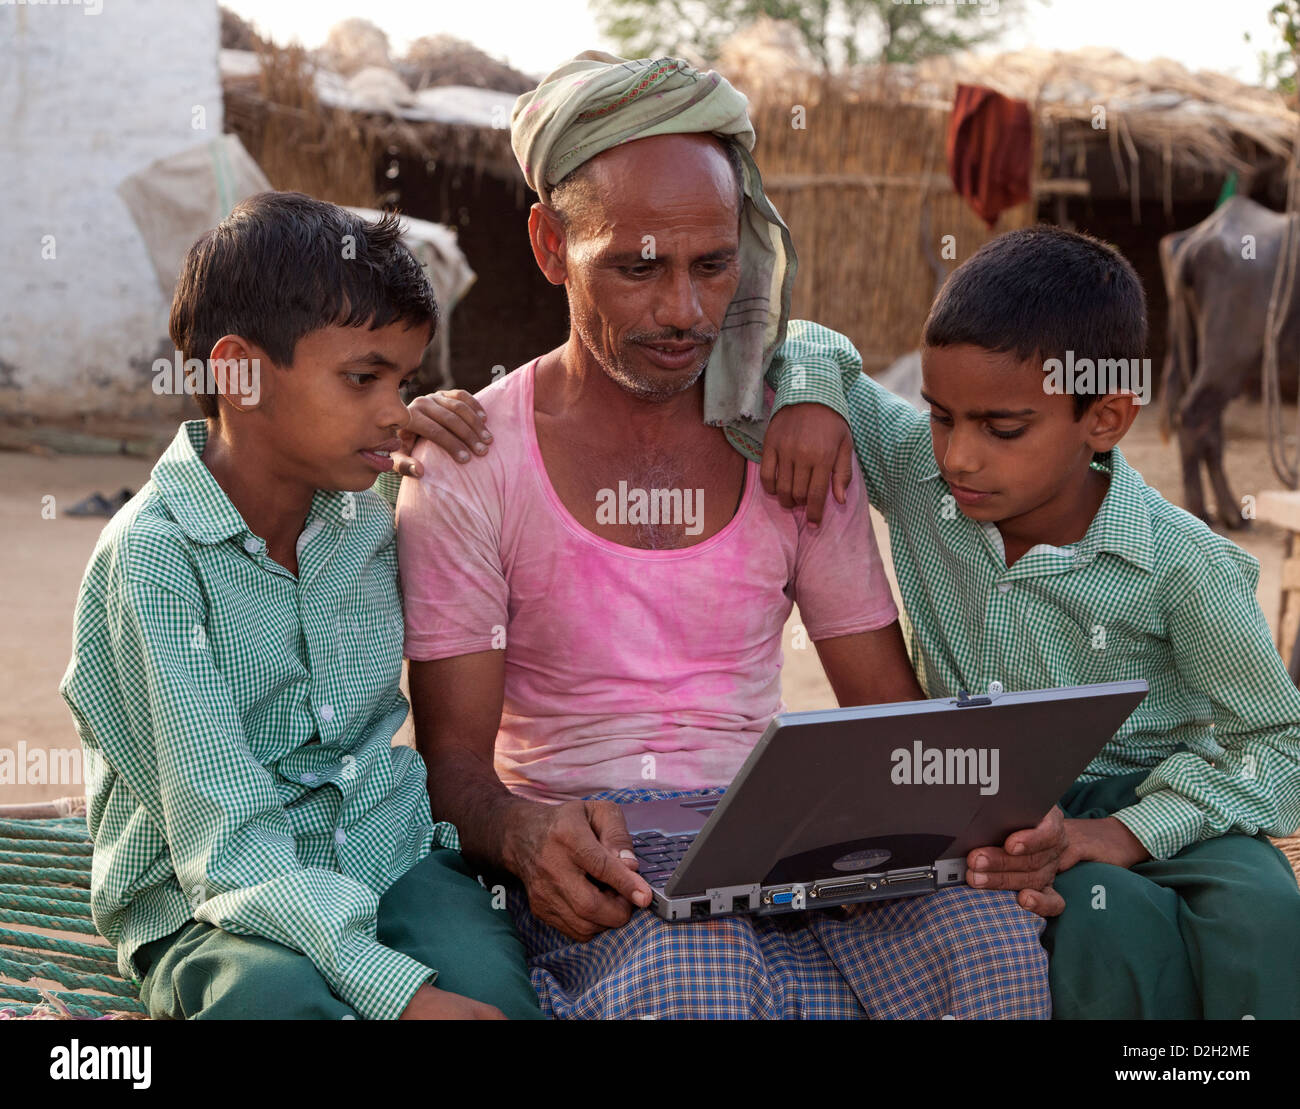 India,Uttar Pradesh, Agra, Two young children in school uniform studying laptop with father. - Stock Image